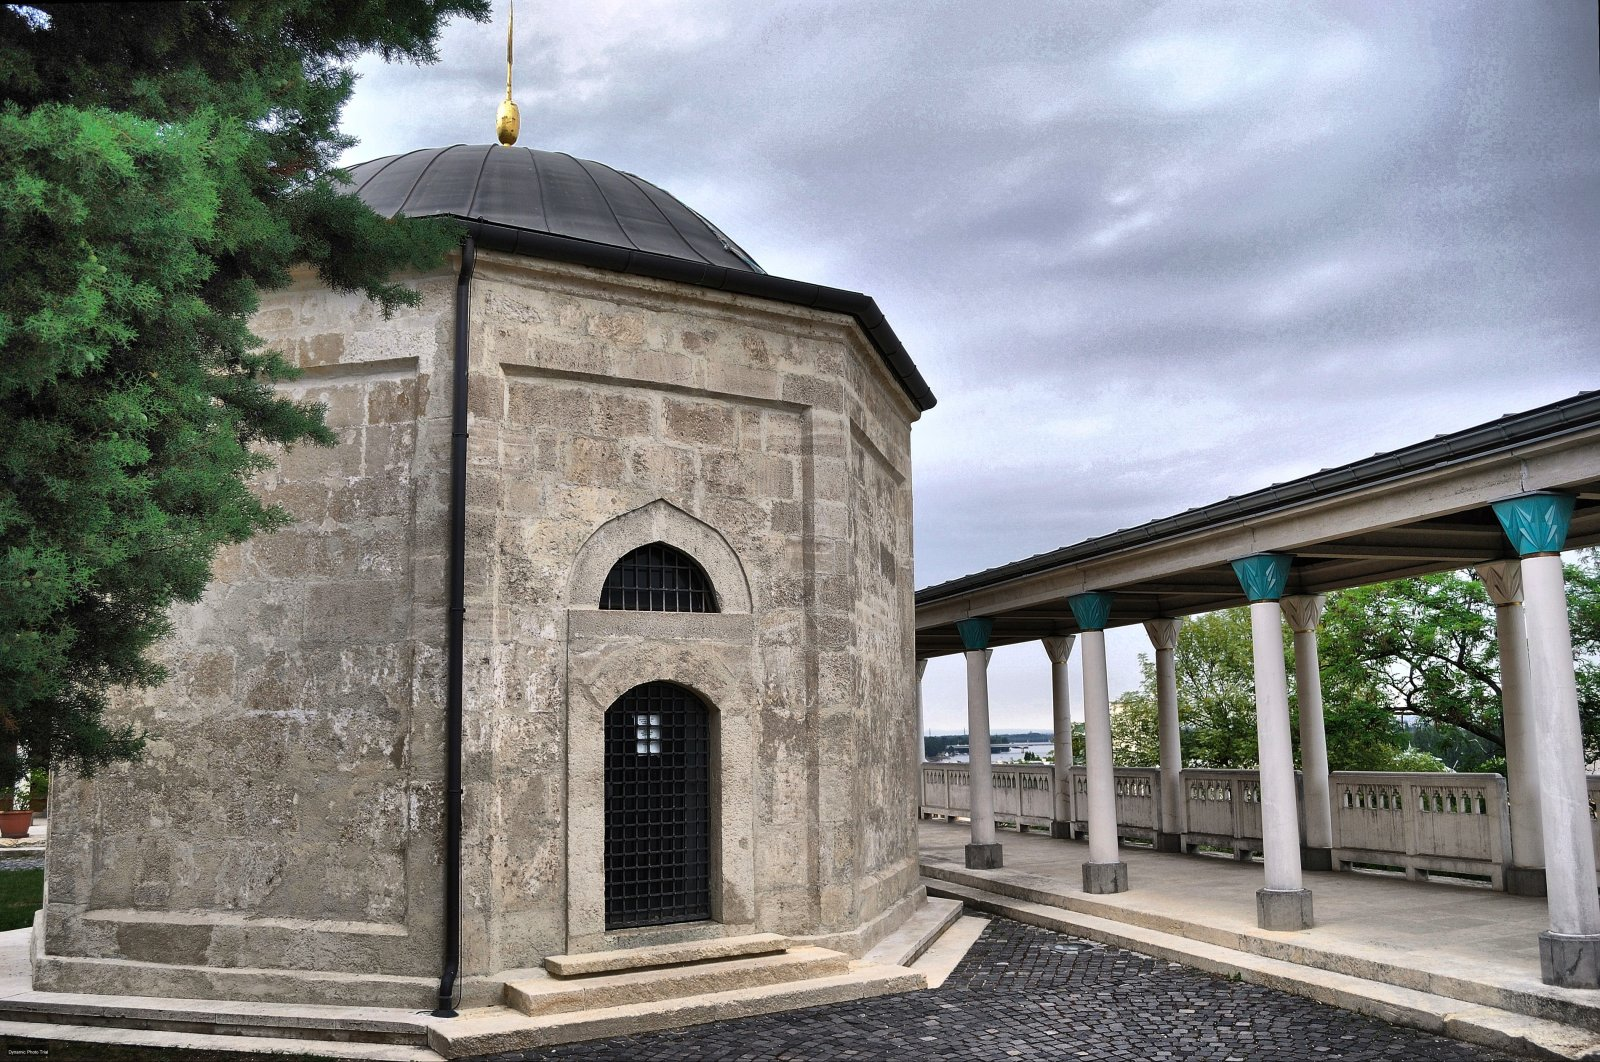 An undated photo of the Ottoman-era Tomb of Gül Baba in Budapest, Hungary.